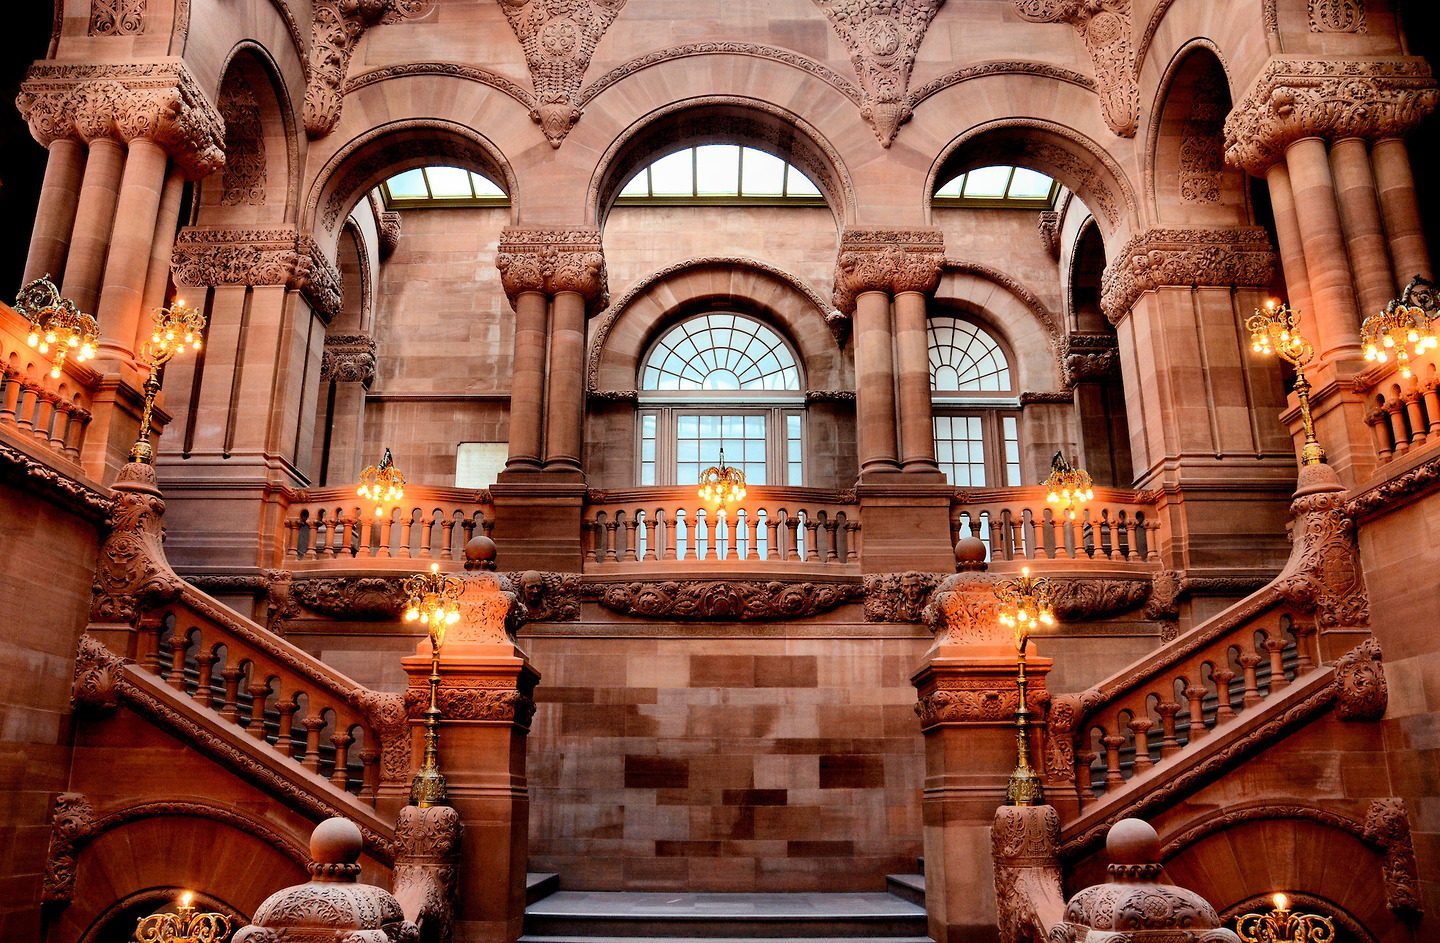 The One Million Dollar Staircase has 300 carved stone portraits of famous New Yorkers and others.